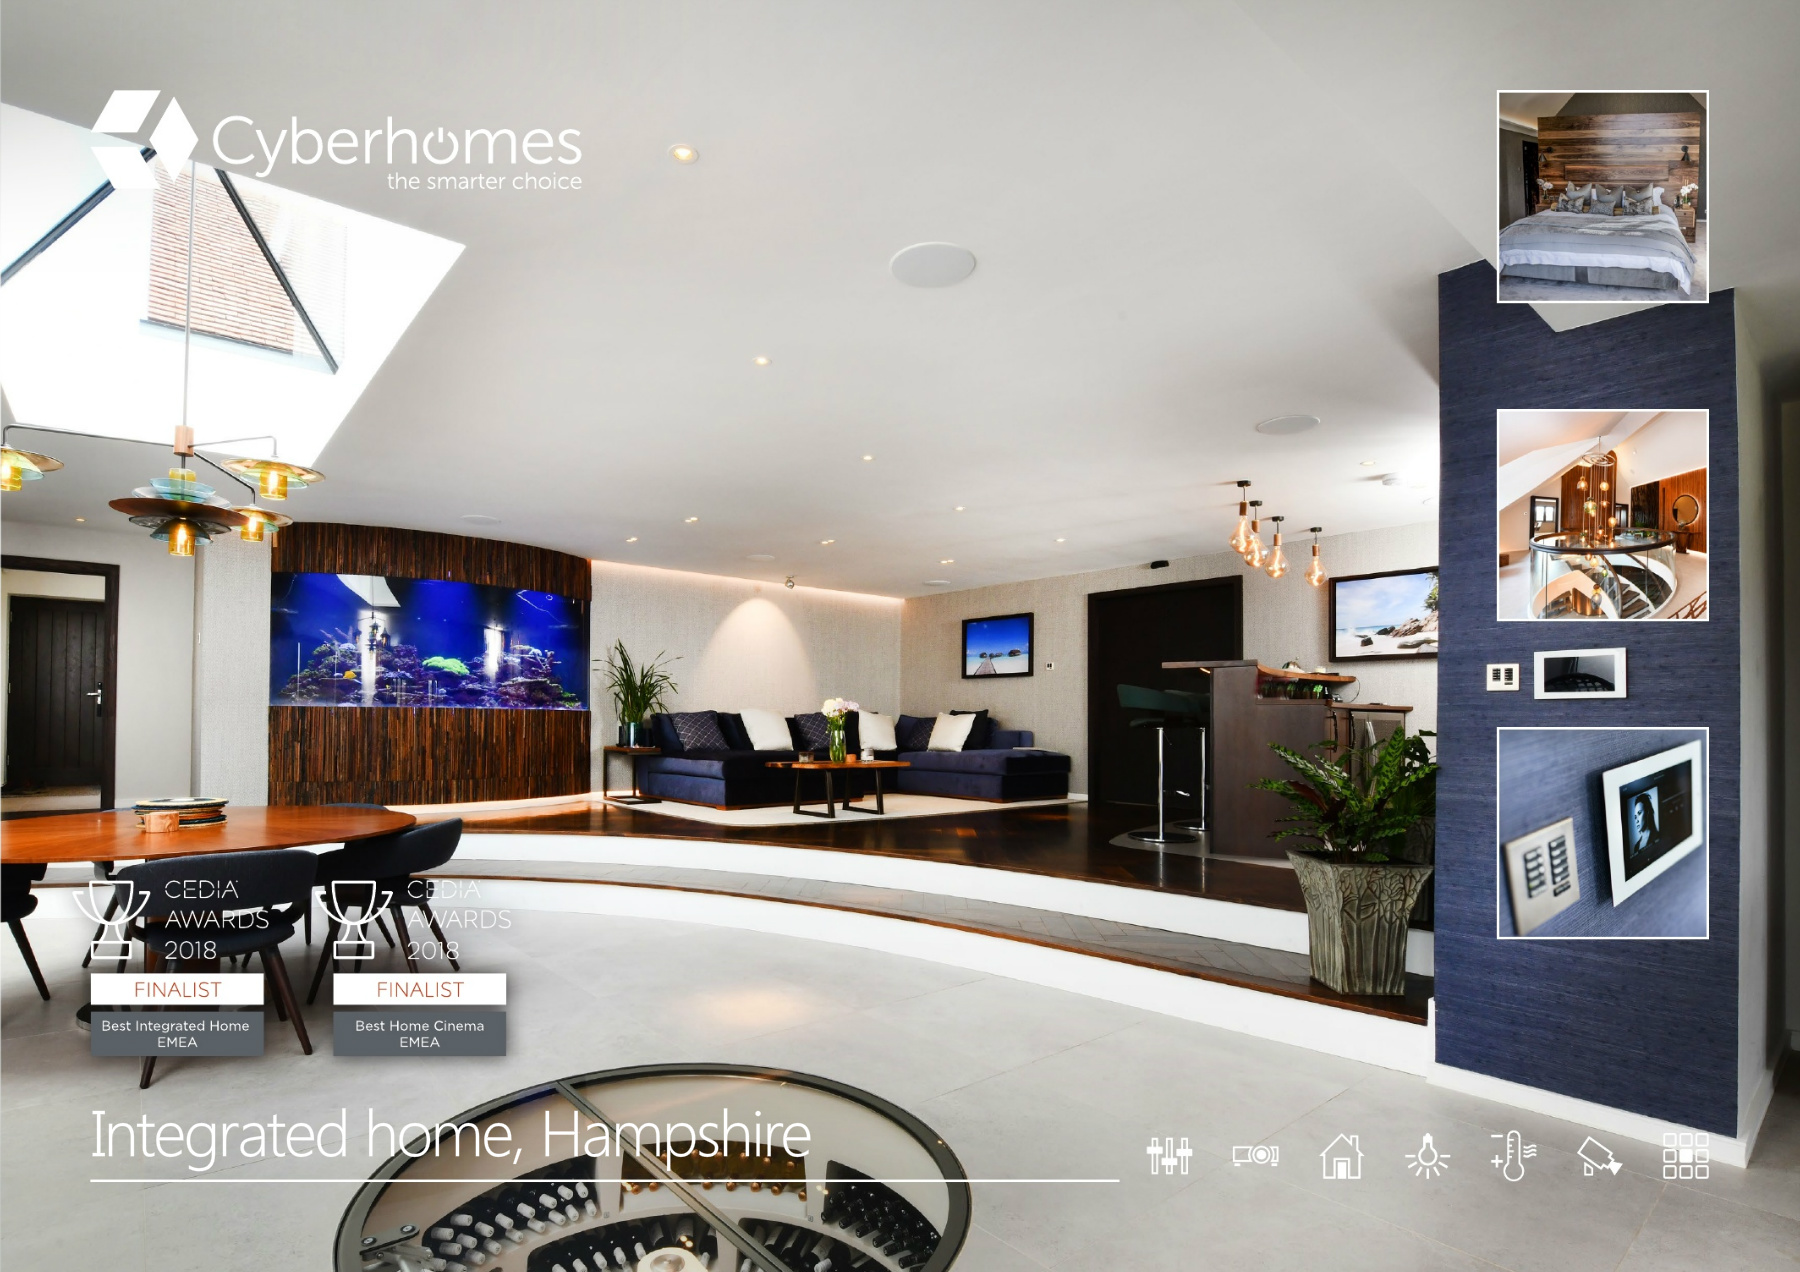 Cyberhomes case study Hampshire Integrated Home